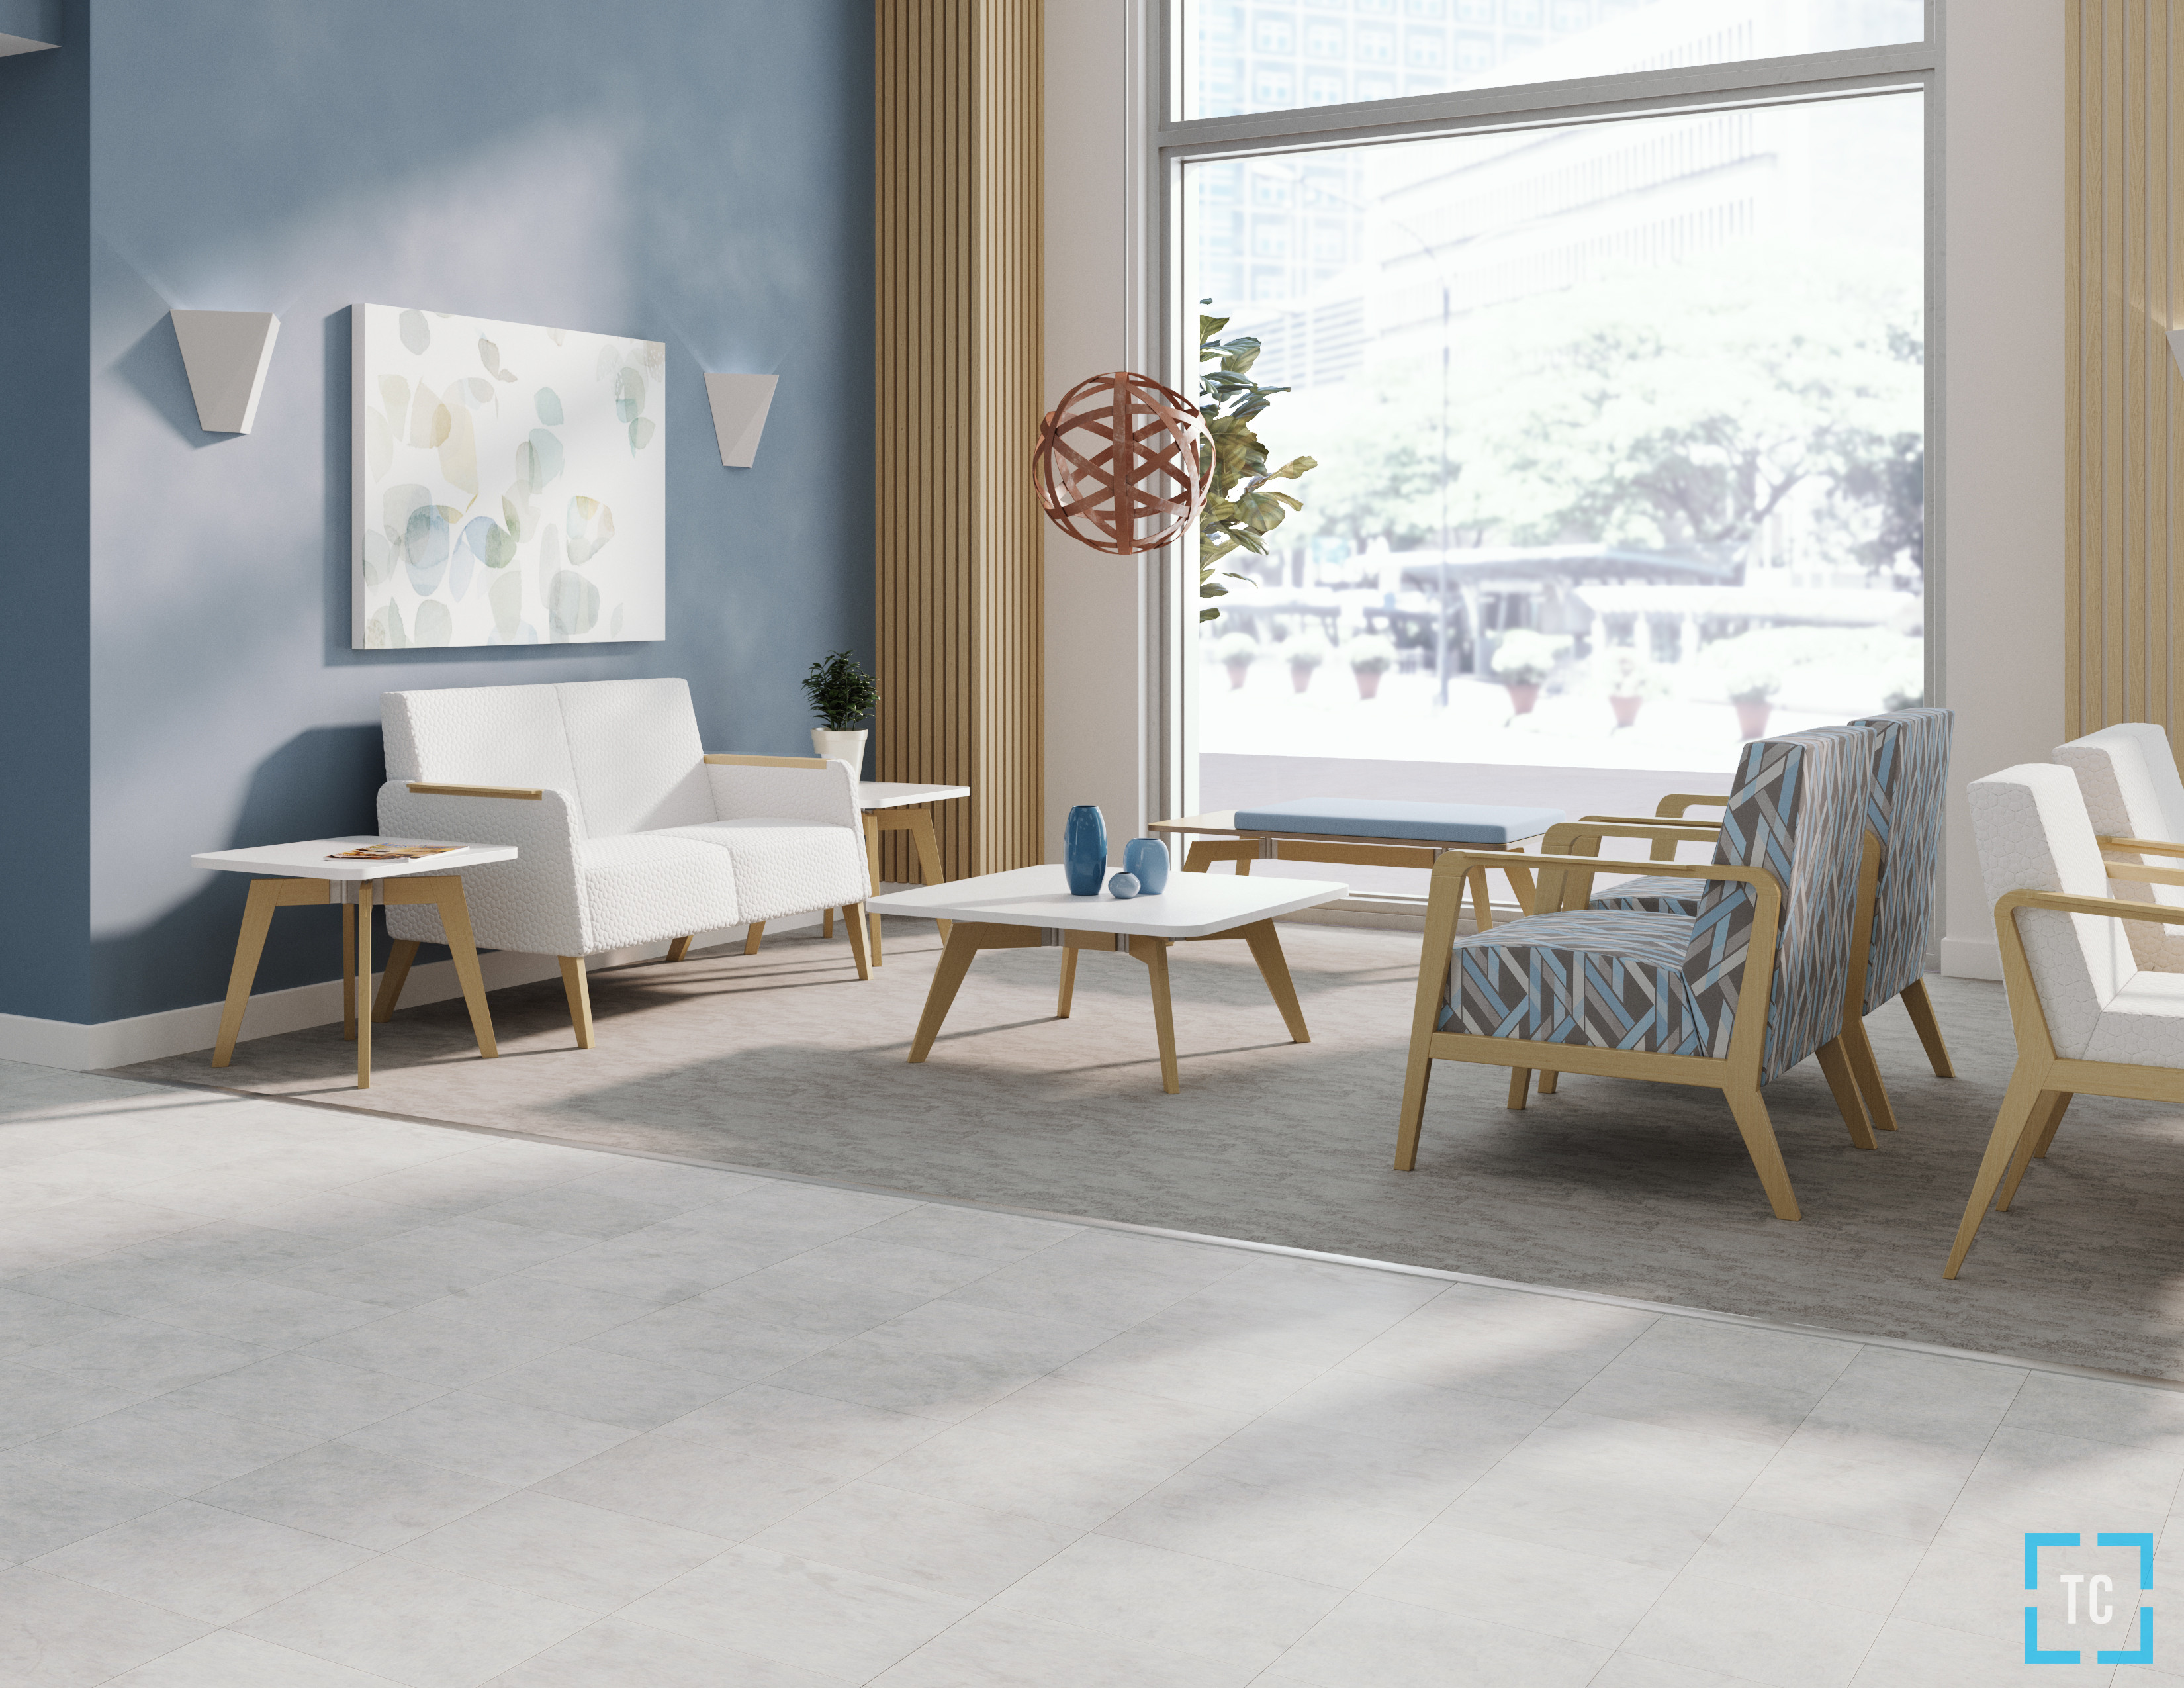 Staging, Materials, Lighting, Rendering, and Post